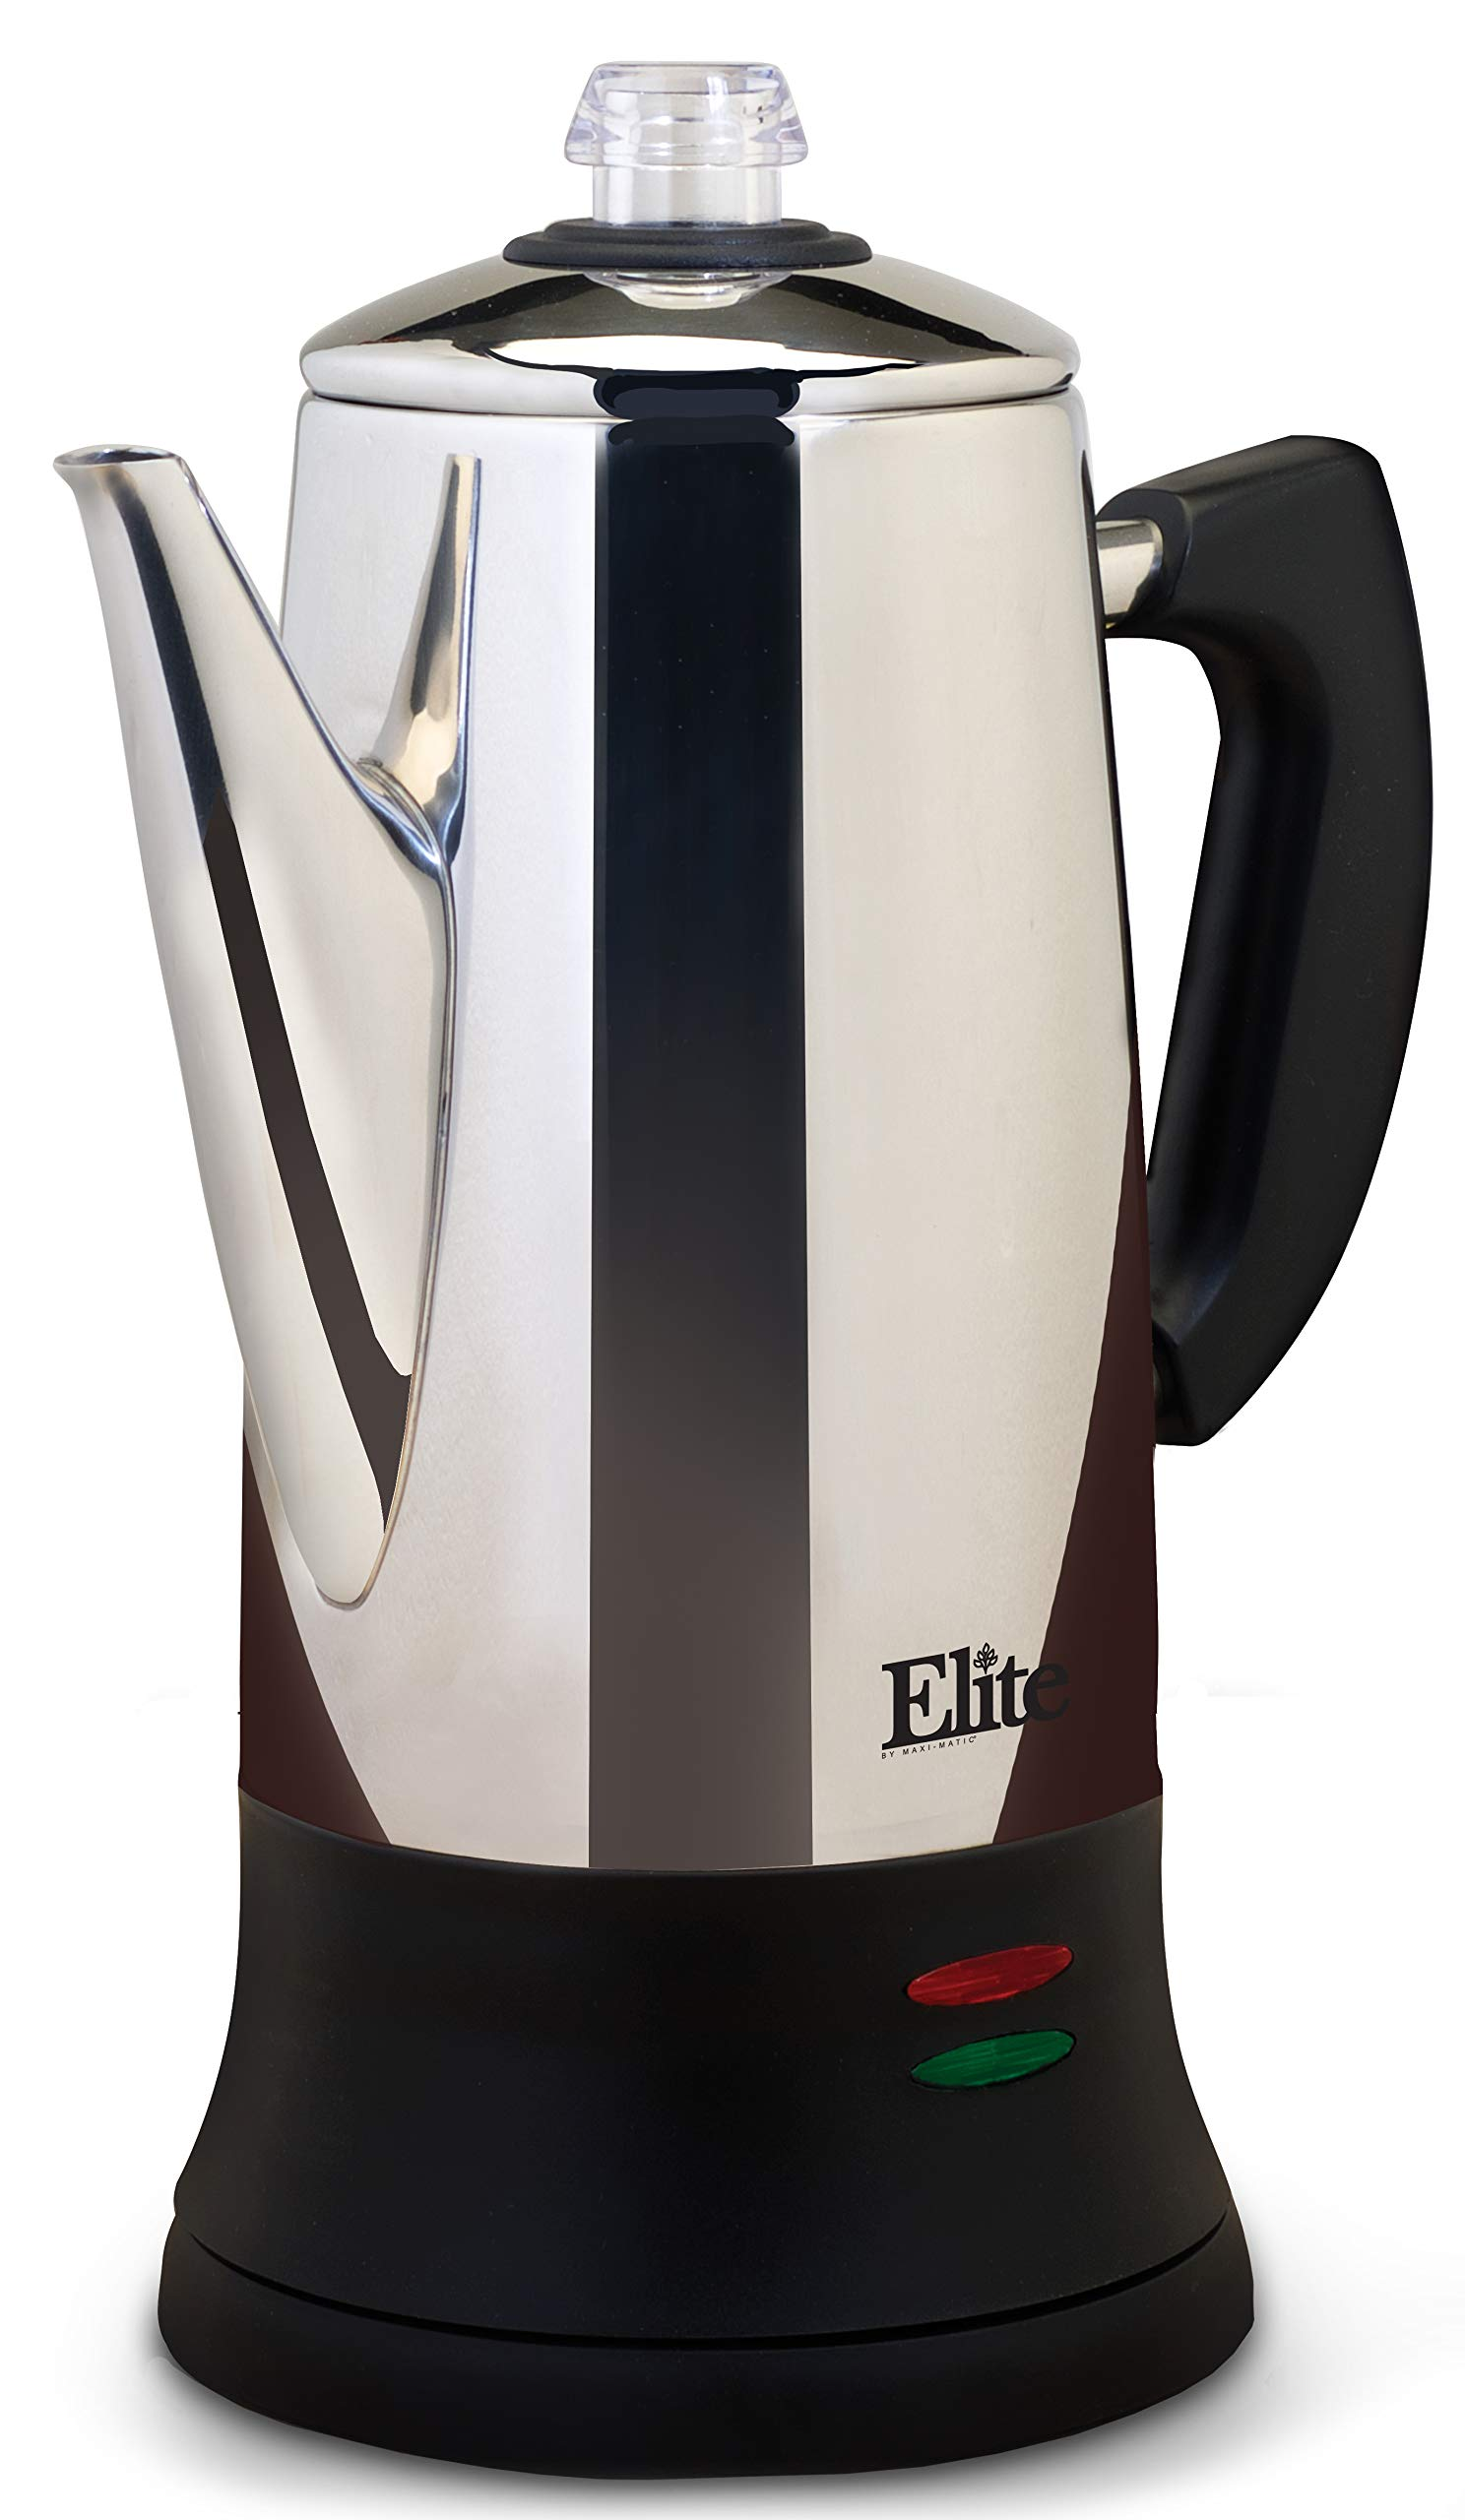 Elite Platinum EC-120 Maxi-Matic 12 Cup Percolator, Stainless Steel by Maxi-Matic